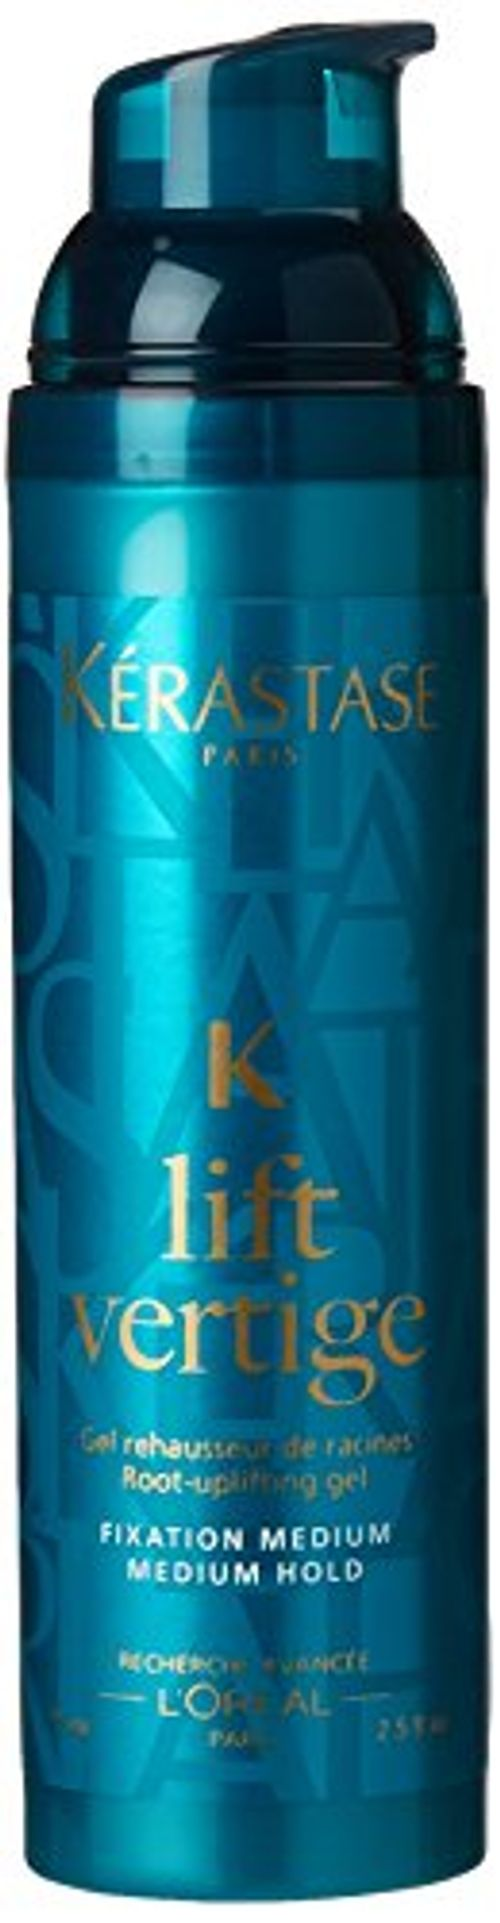 photo Wallpaper of Kerastase-KERASTASE K Lift Vertige 75 Ml-